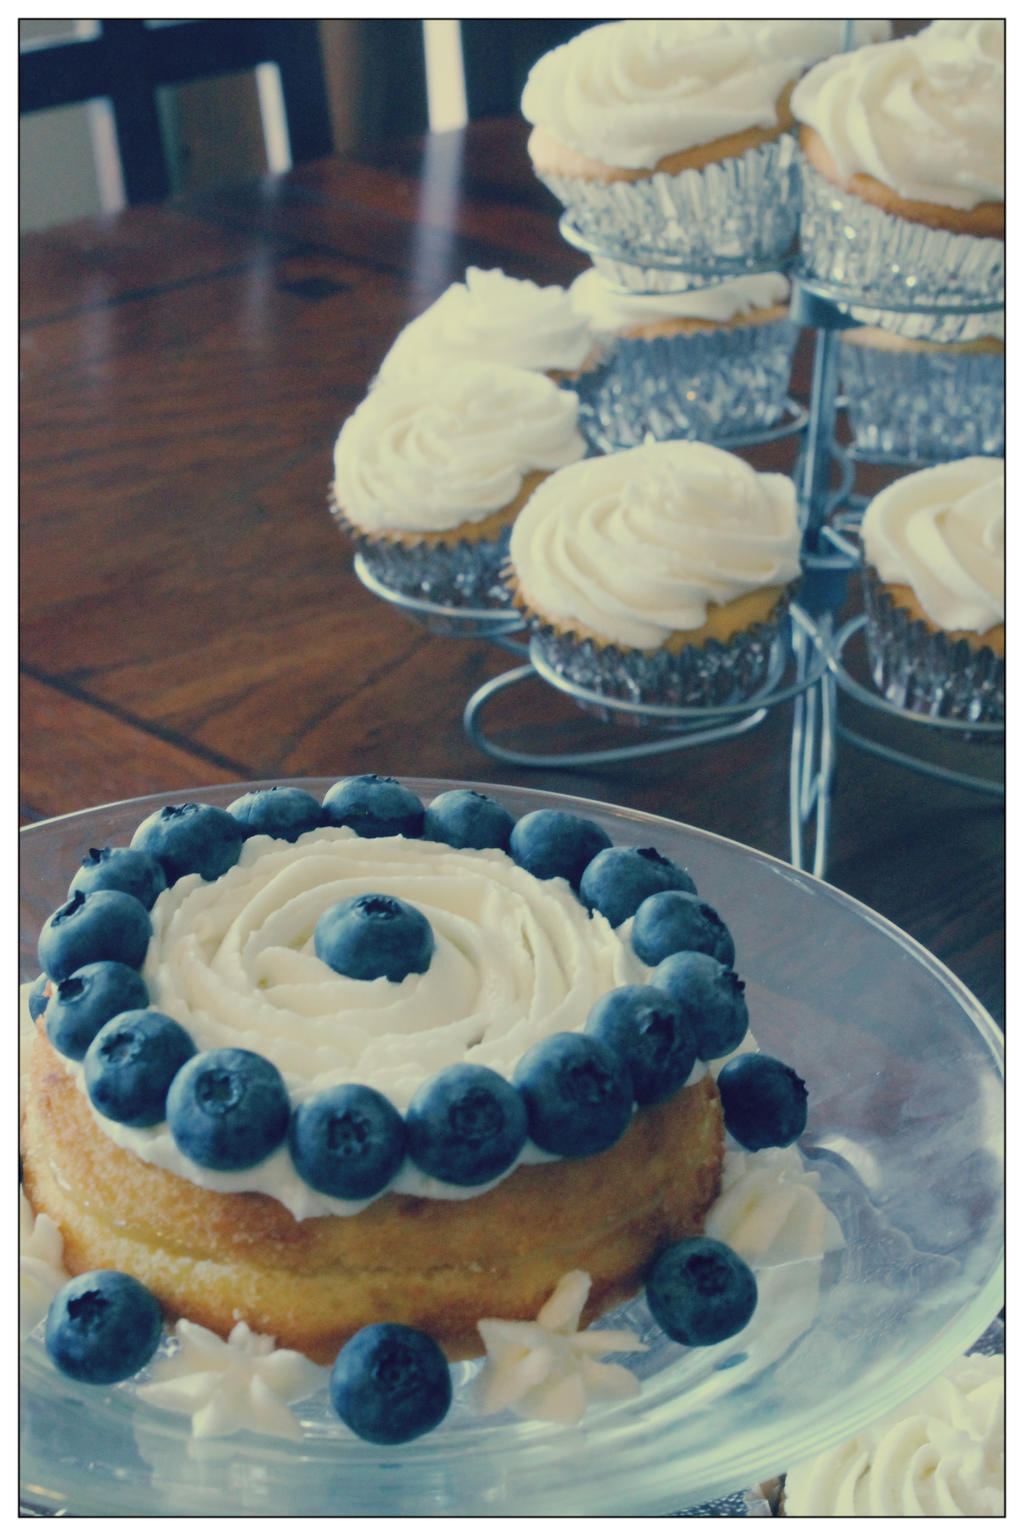 Lemon Blueberry Cake by Adonenniel